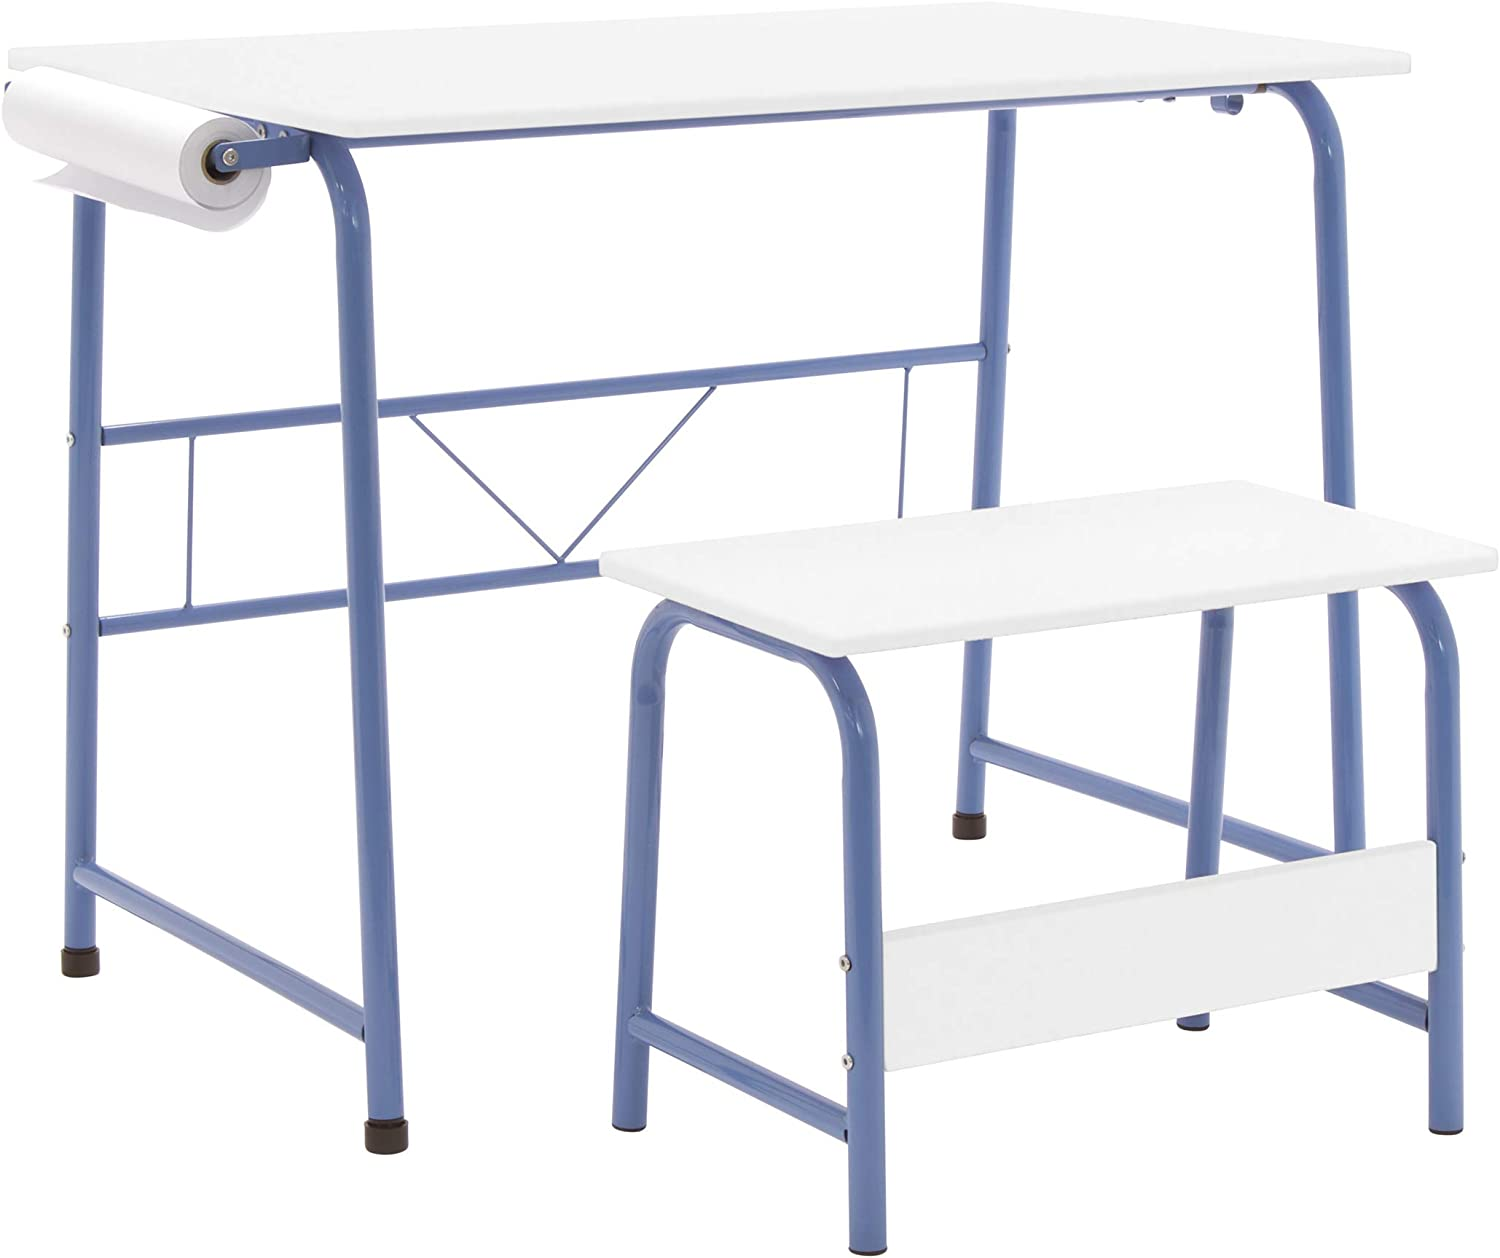 SD Studio Designs Homeroom 2 Piece Art Table with Bench, Paper Roll inlcuded, Blue/White